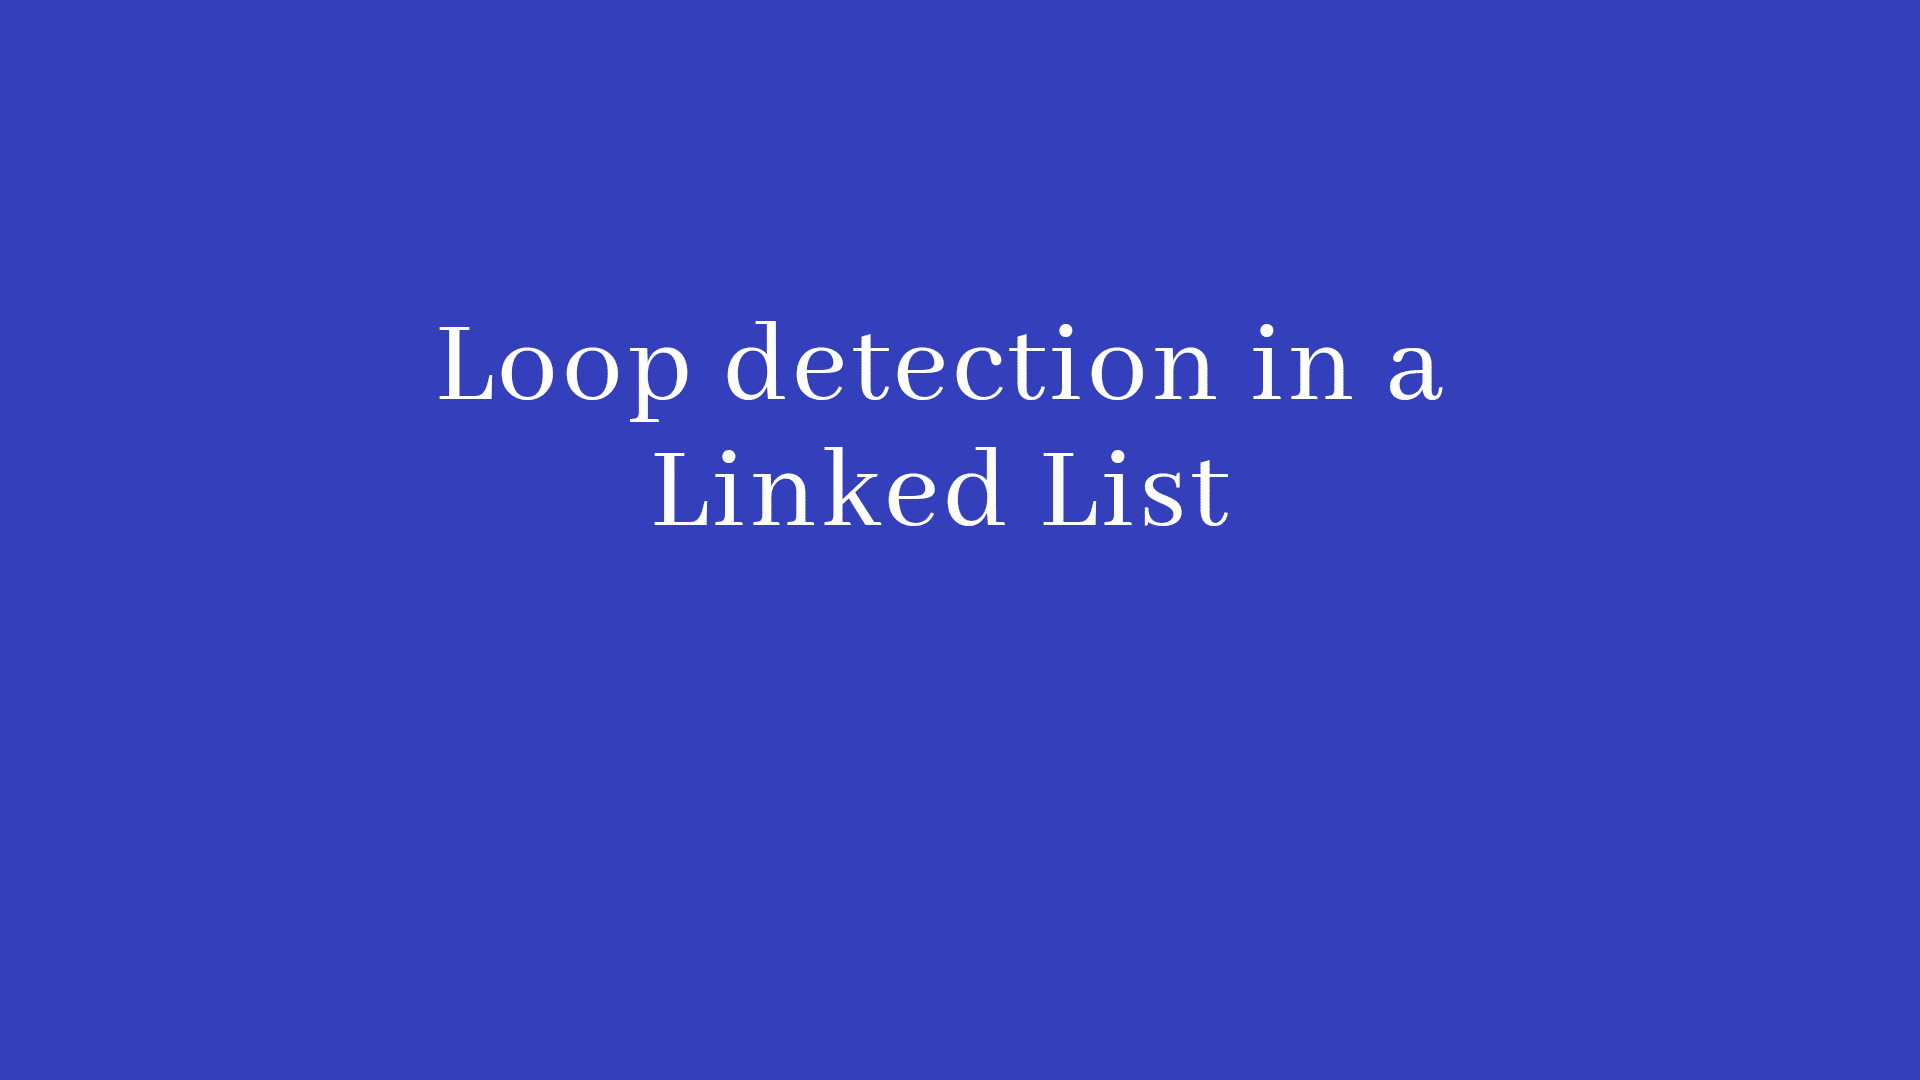 Loop detection in a linked list